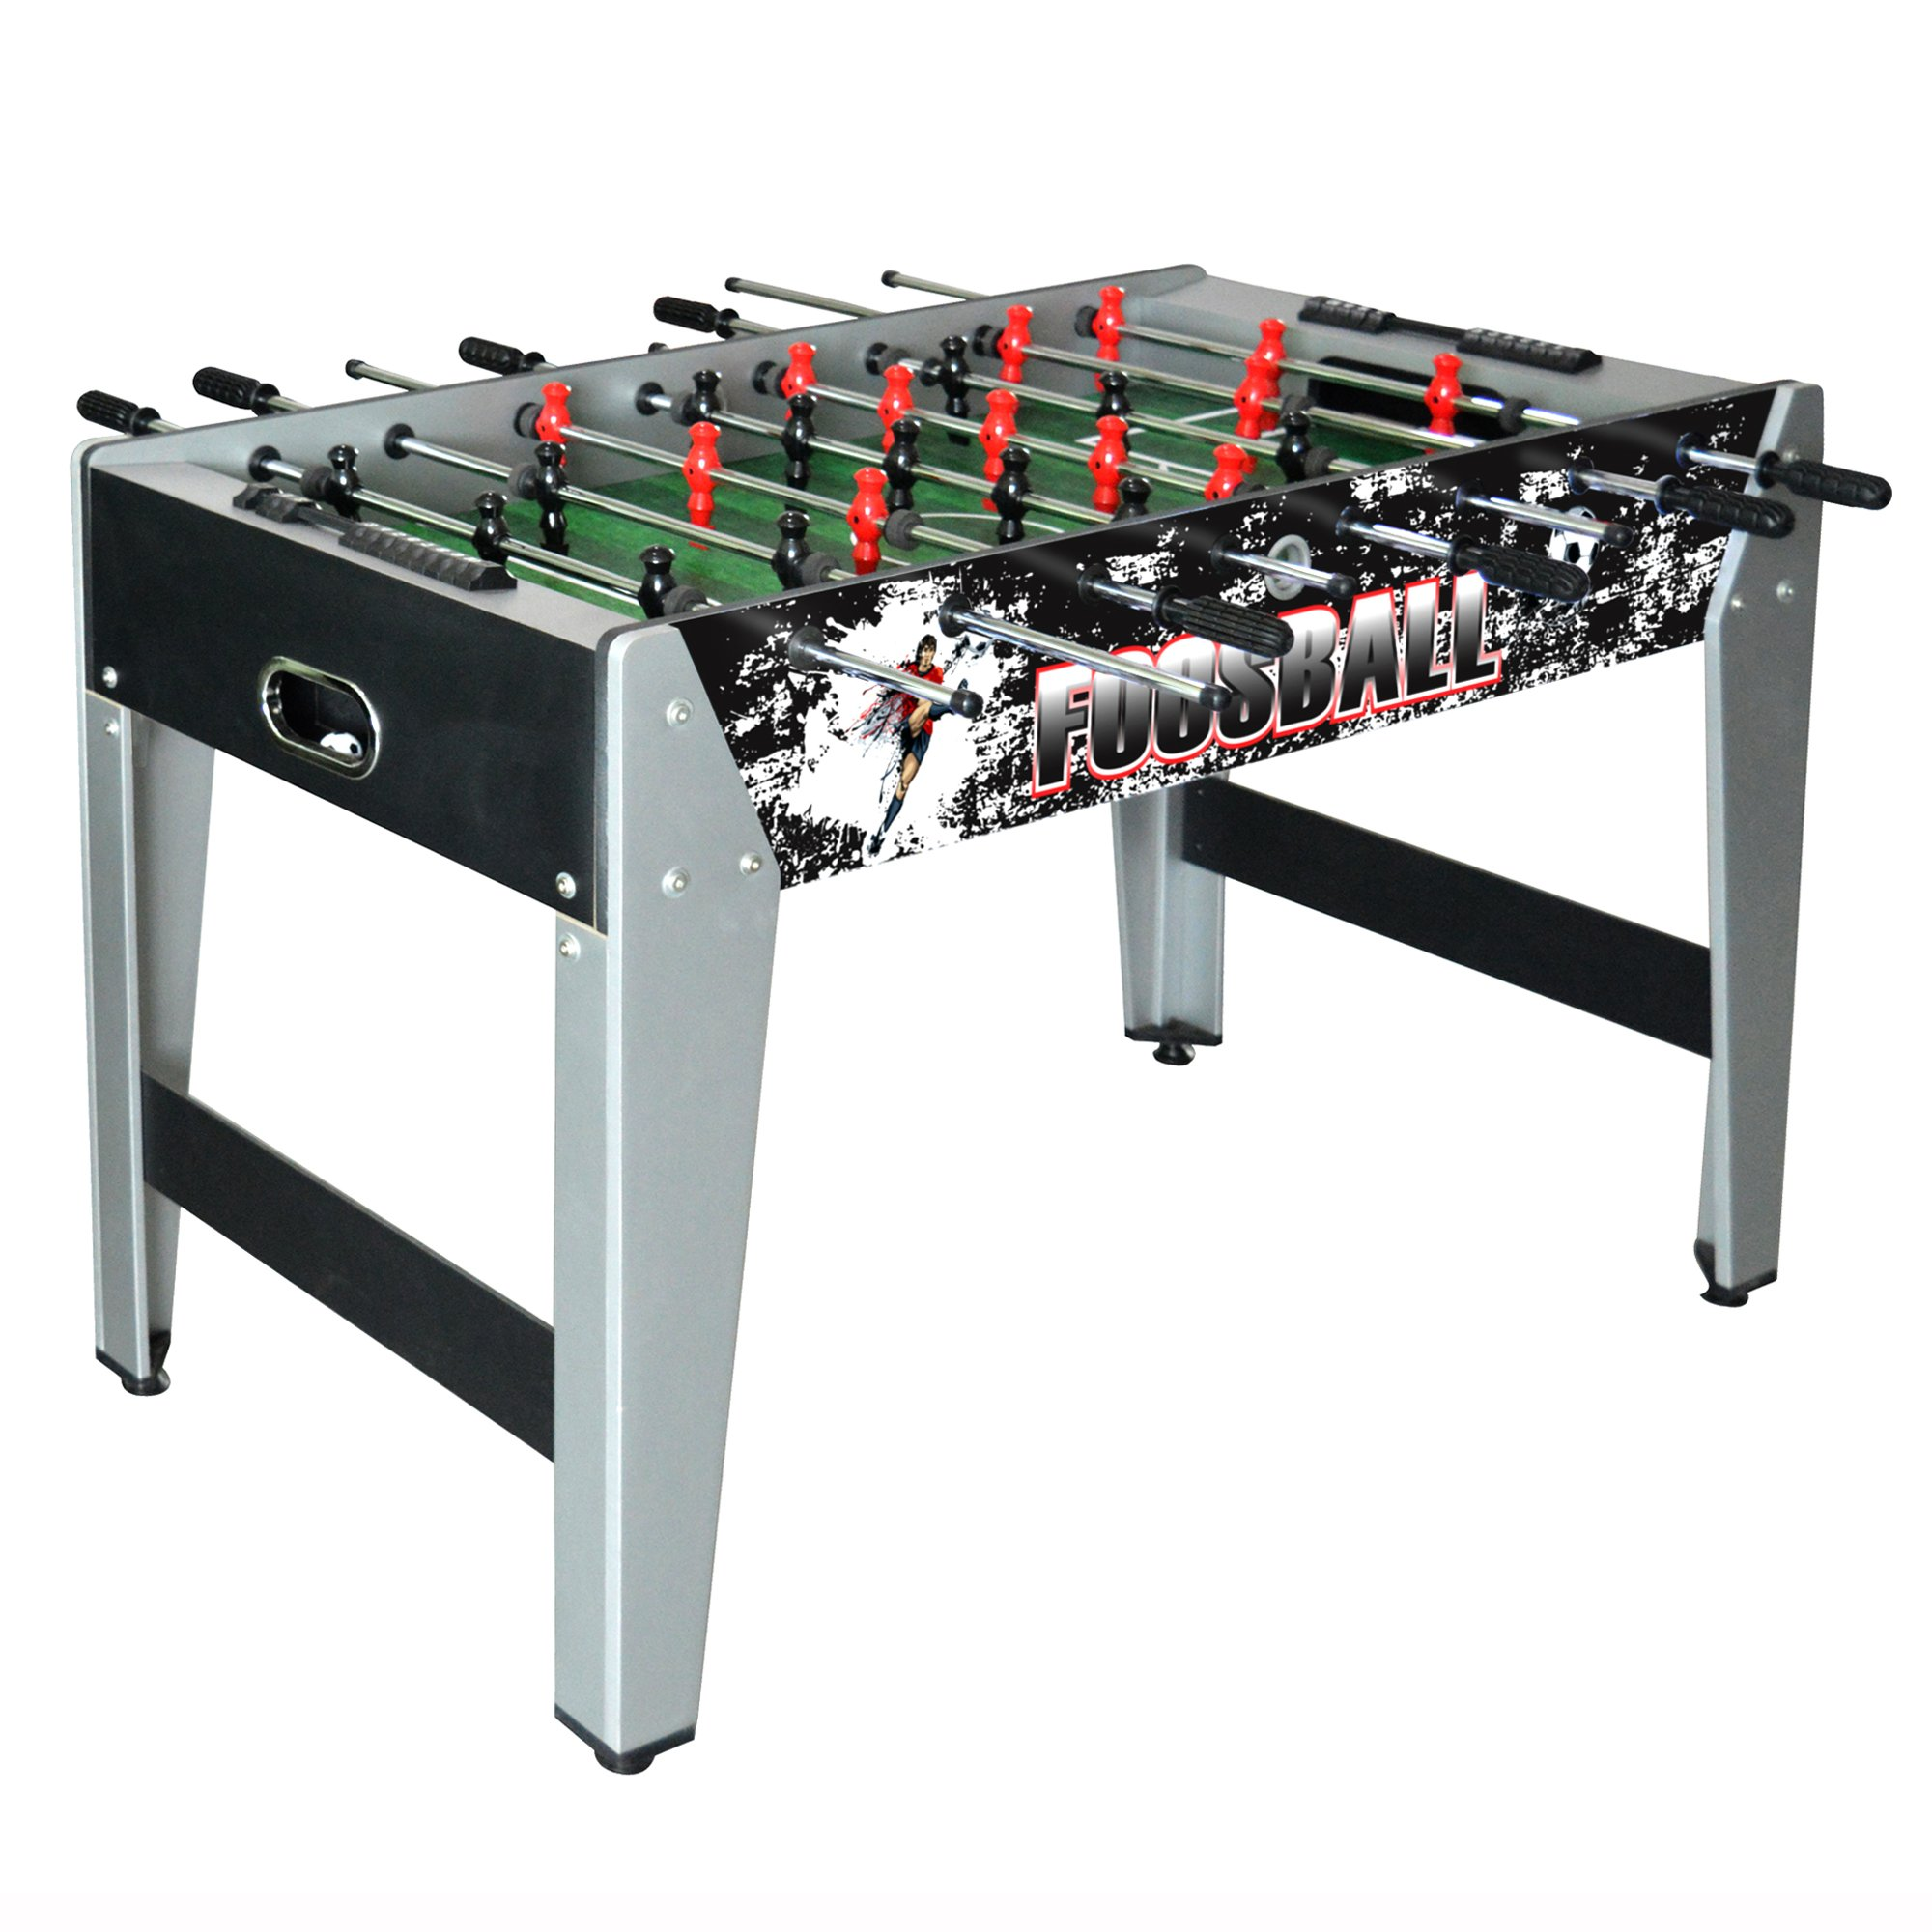 Hathaway Avalanche Foosball Table Soccer Game with Ergonomic Handles for Kids and Adults, 48-in Black/Gray by Hathaway